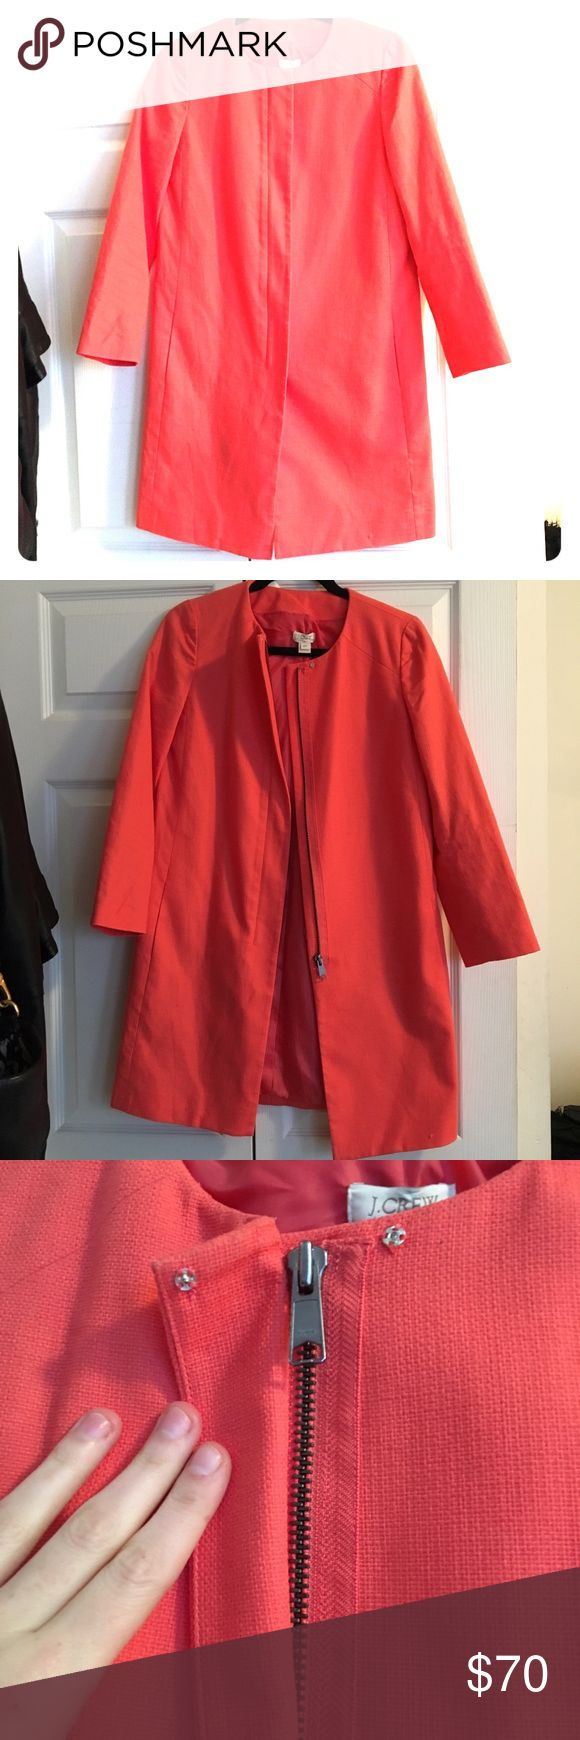 J Crew Coat J Crew collarless coat. Size 00. Originally $178. Perfect coat for the Spring! Only worn 2 times. J. Crew Jackets & Coats Trench Coats